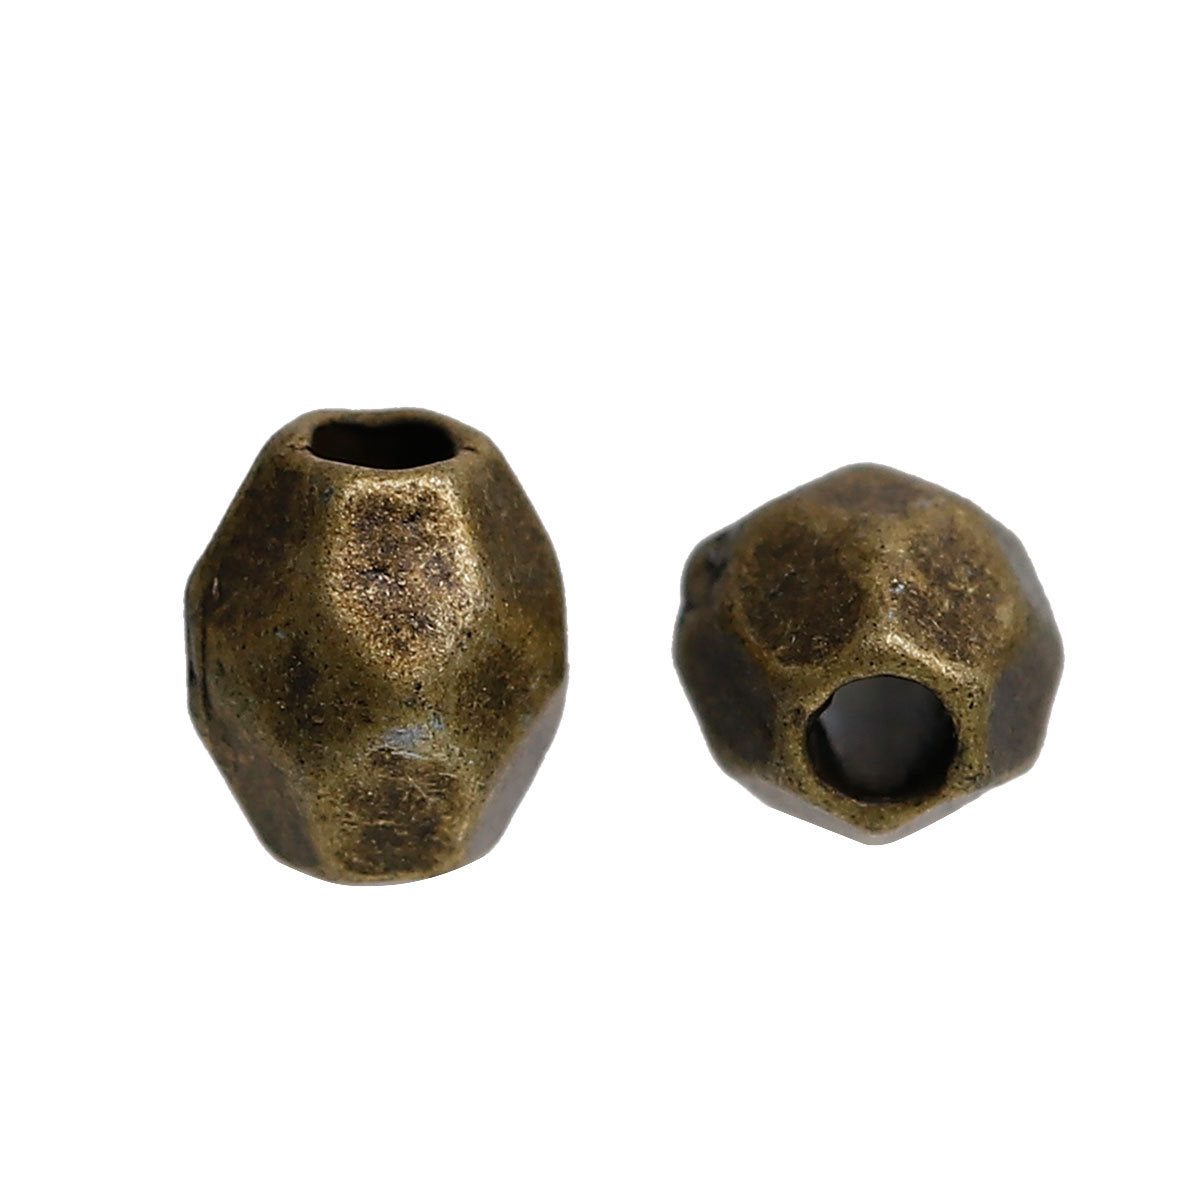 "Bronze Bicone Spacer Beads 4mm (1/8"") x 3mm (1/8""), Hole: Approx 1.4mm, 50 pieces"